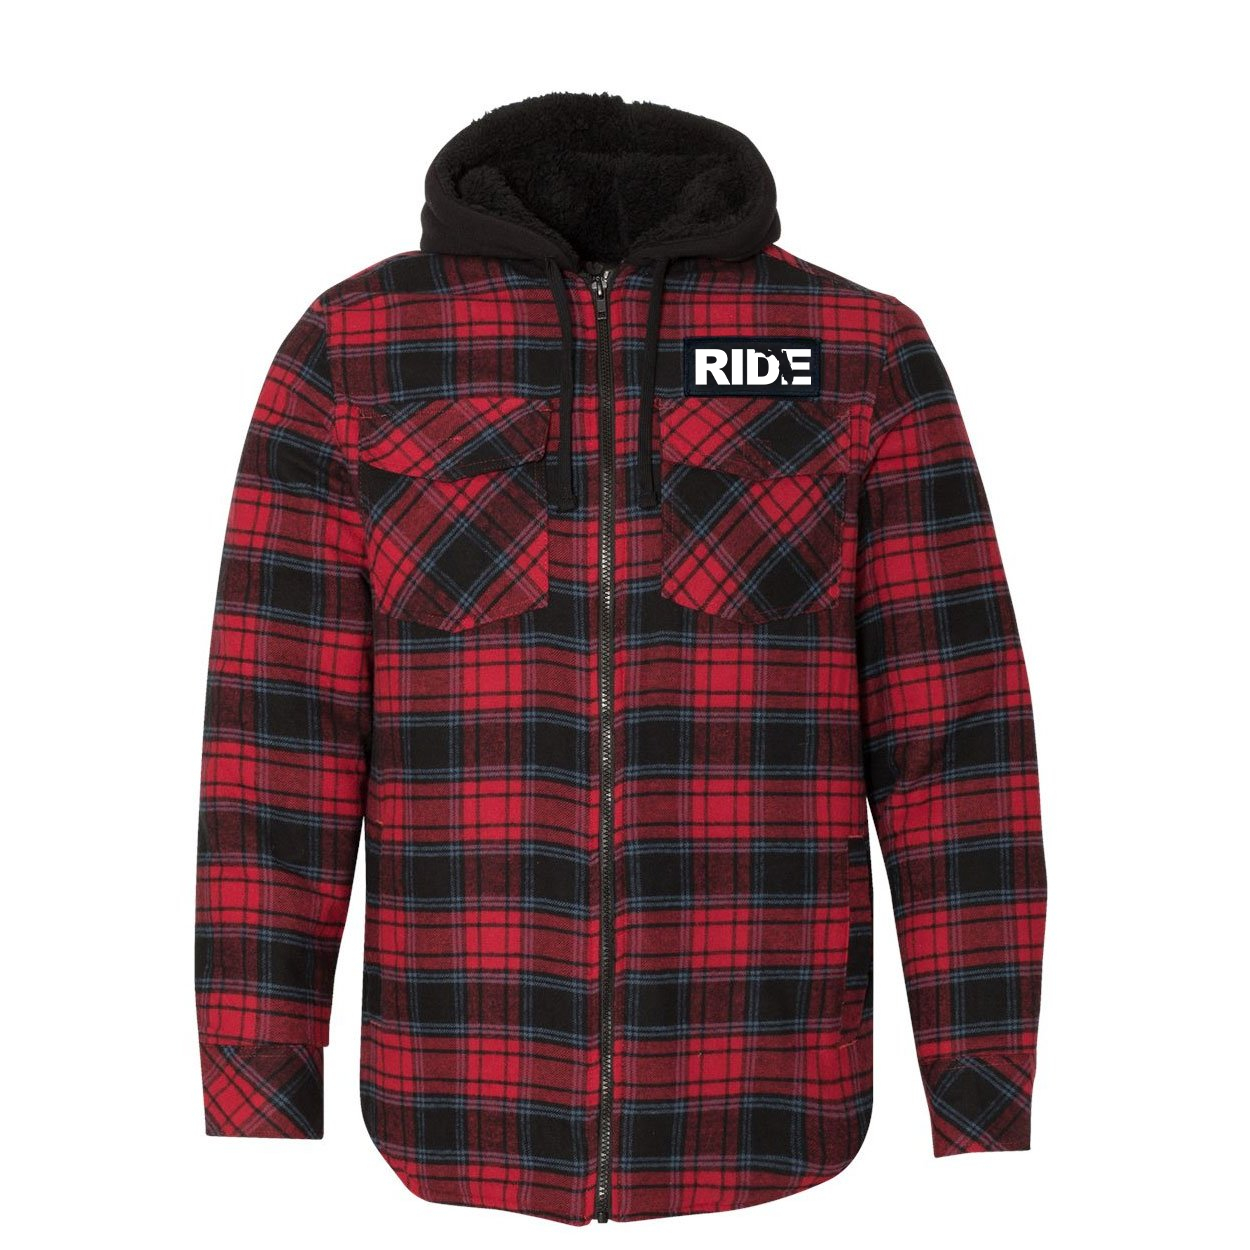 Ride Florida Classic Unisex Full Zip Woven Patch Hooded Flannel Jacket Red/Black Buffalo (White Logo)